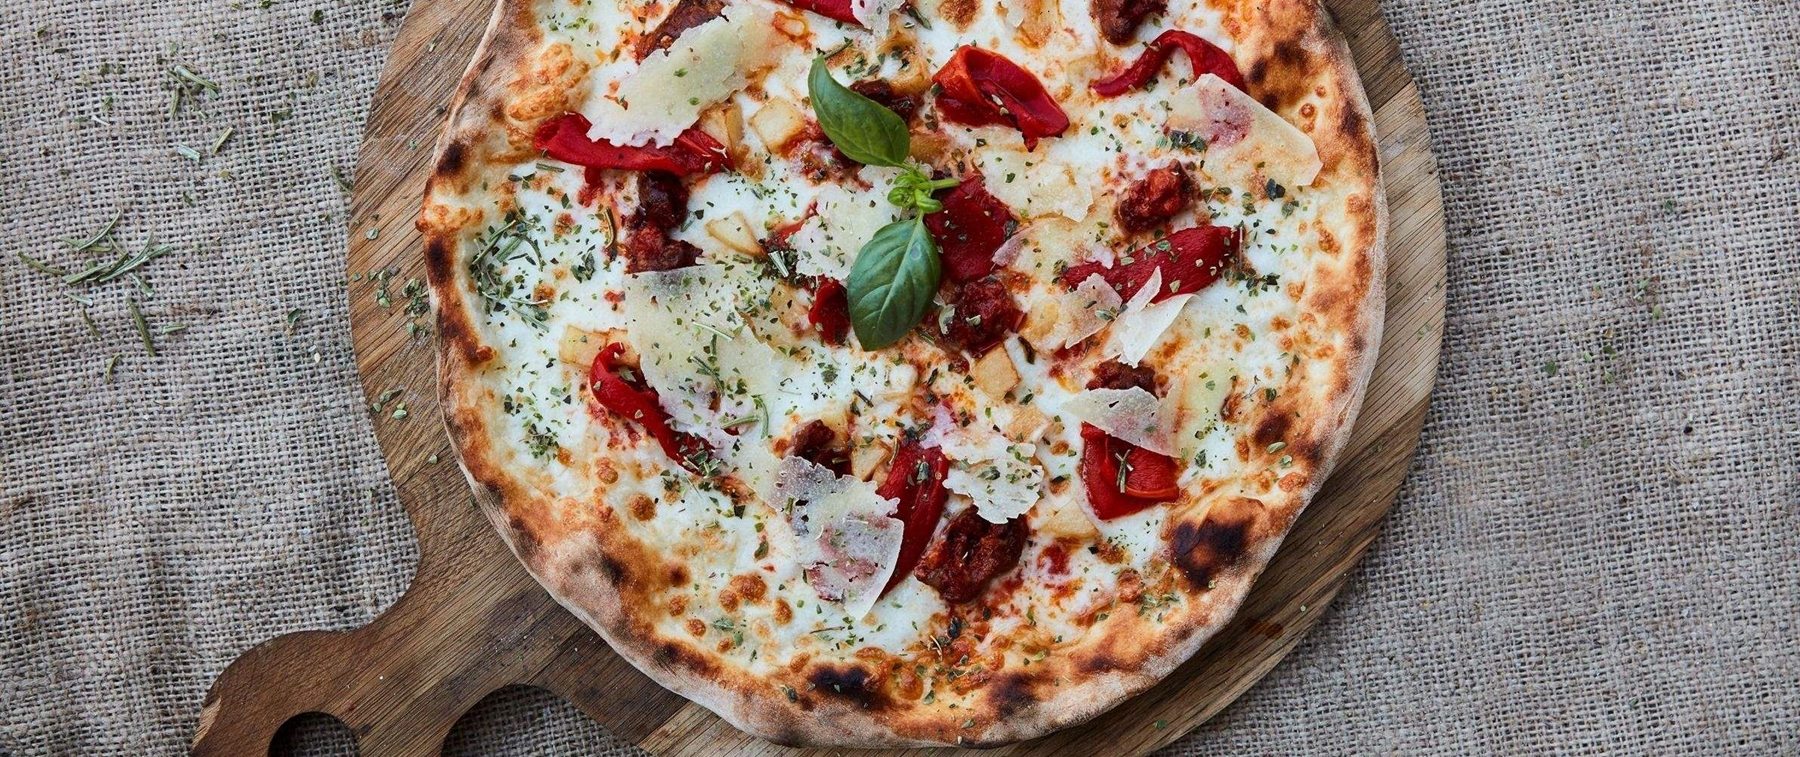 Enjoy a wide pizza selection at Bussola